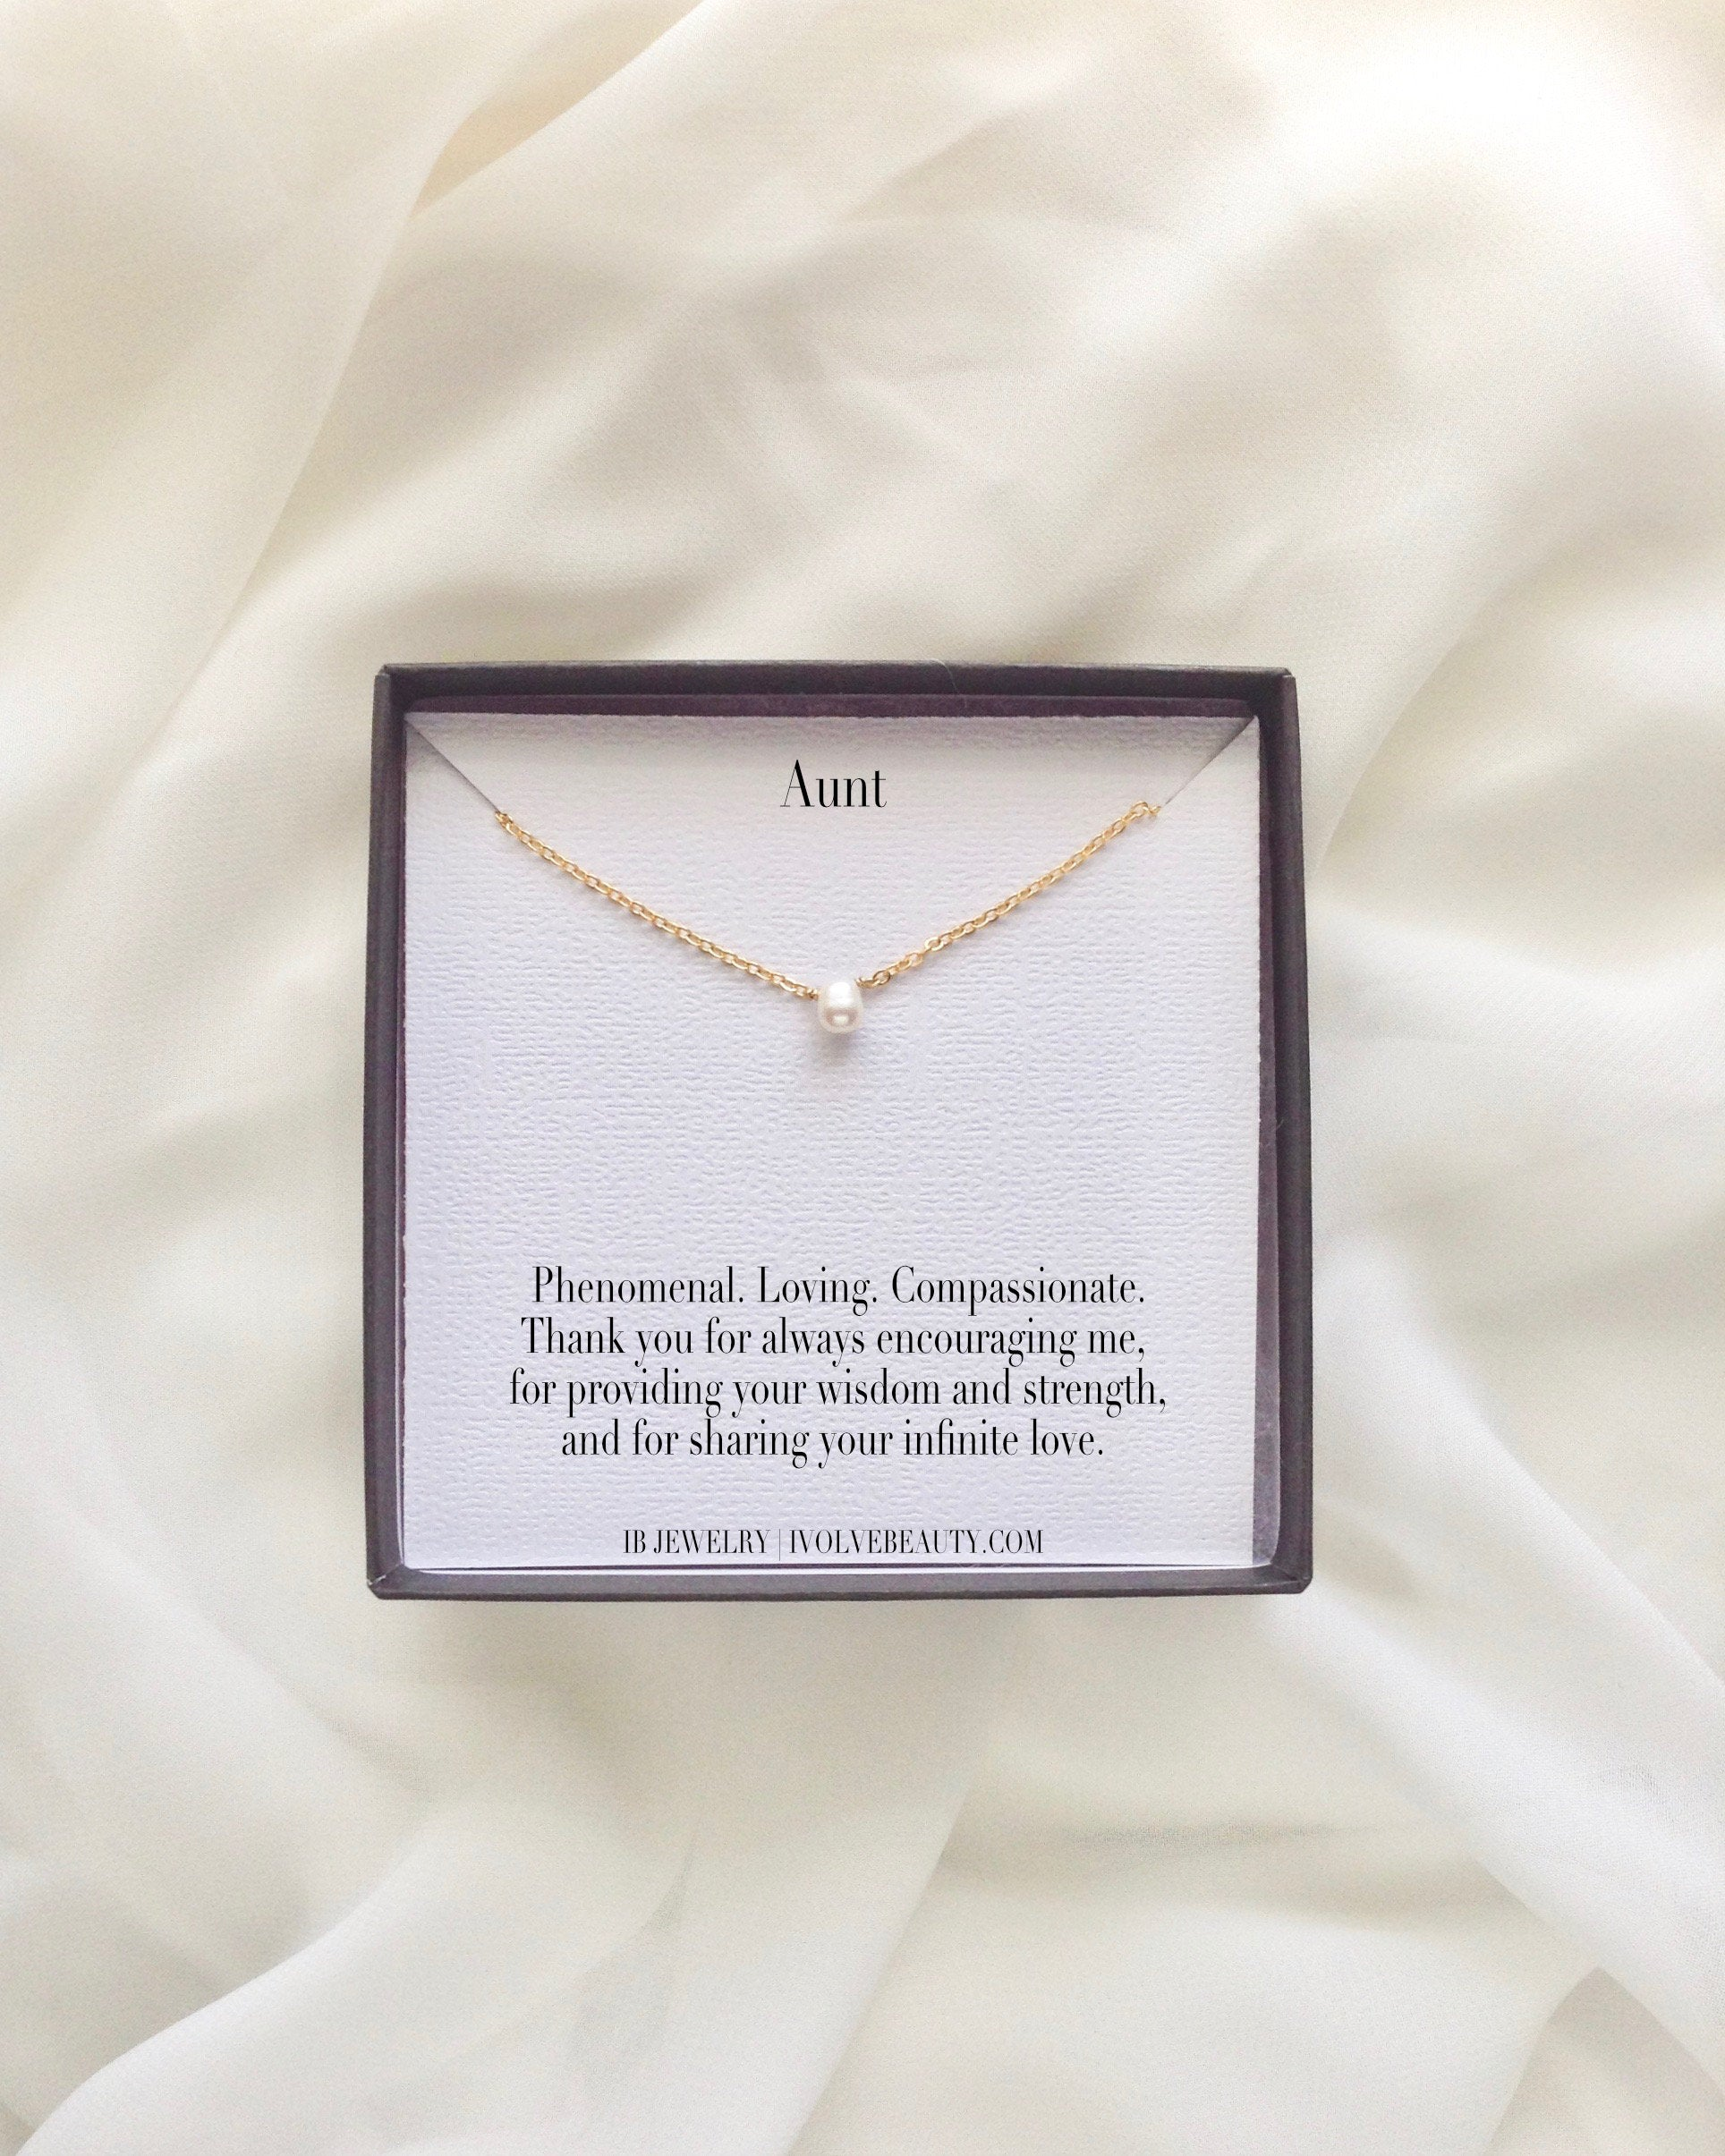 Aunt Meaningful Necklace Gift | IB Jewelry